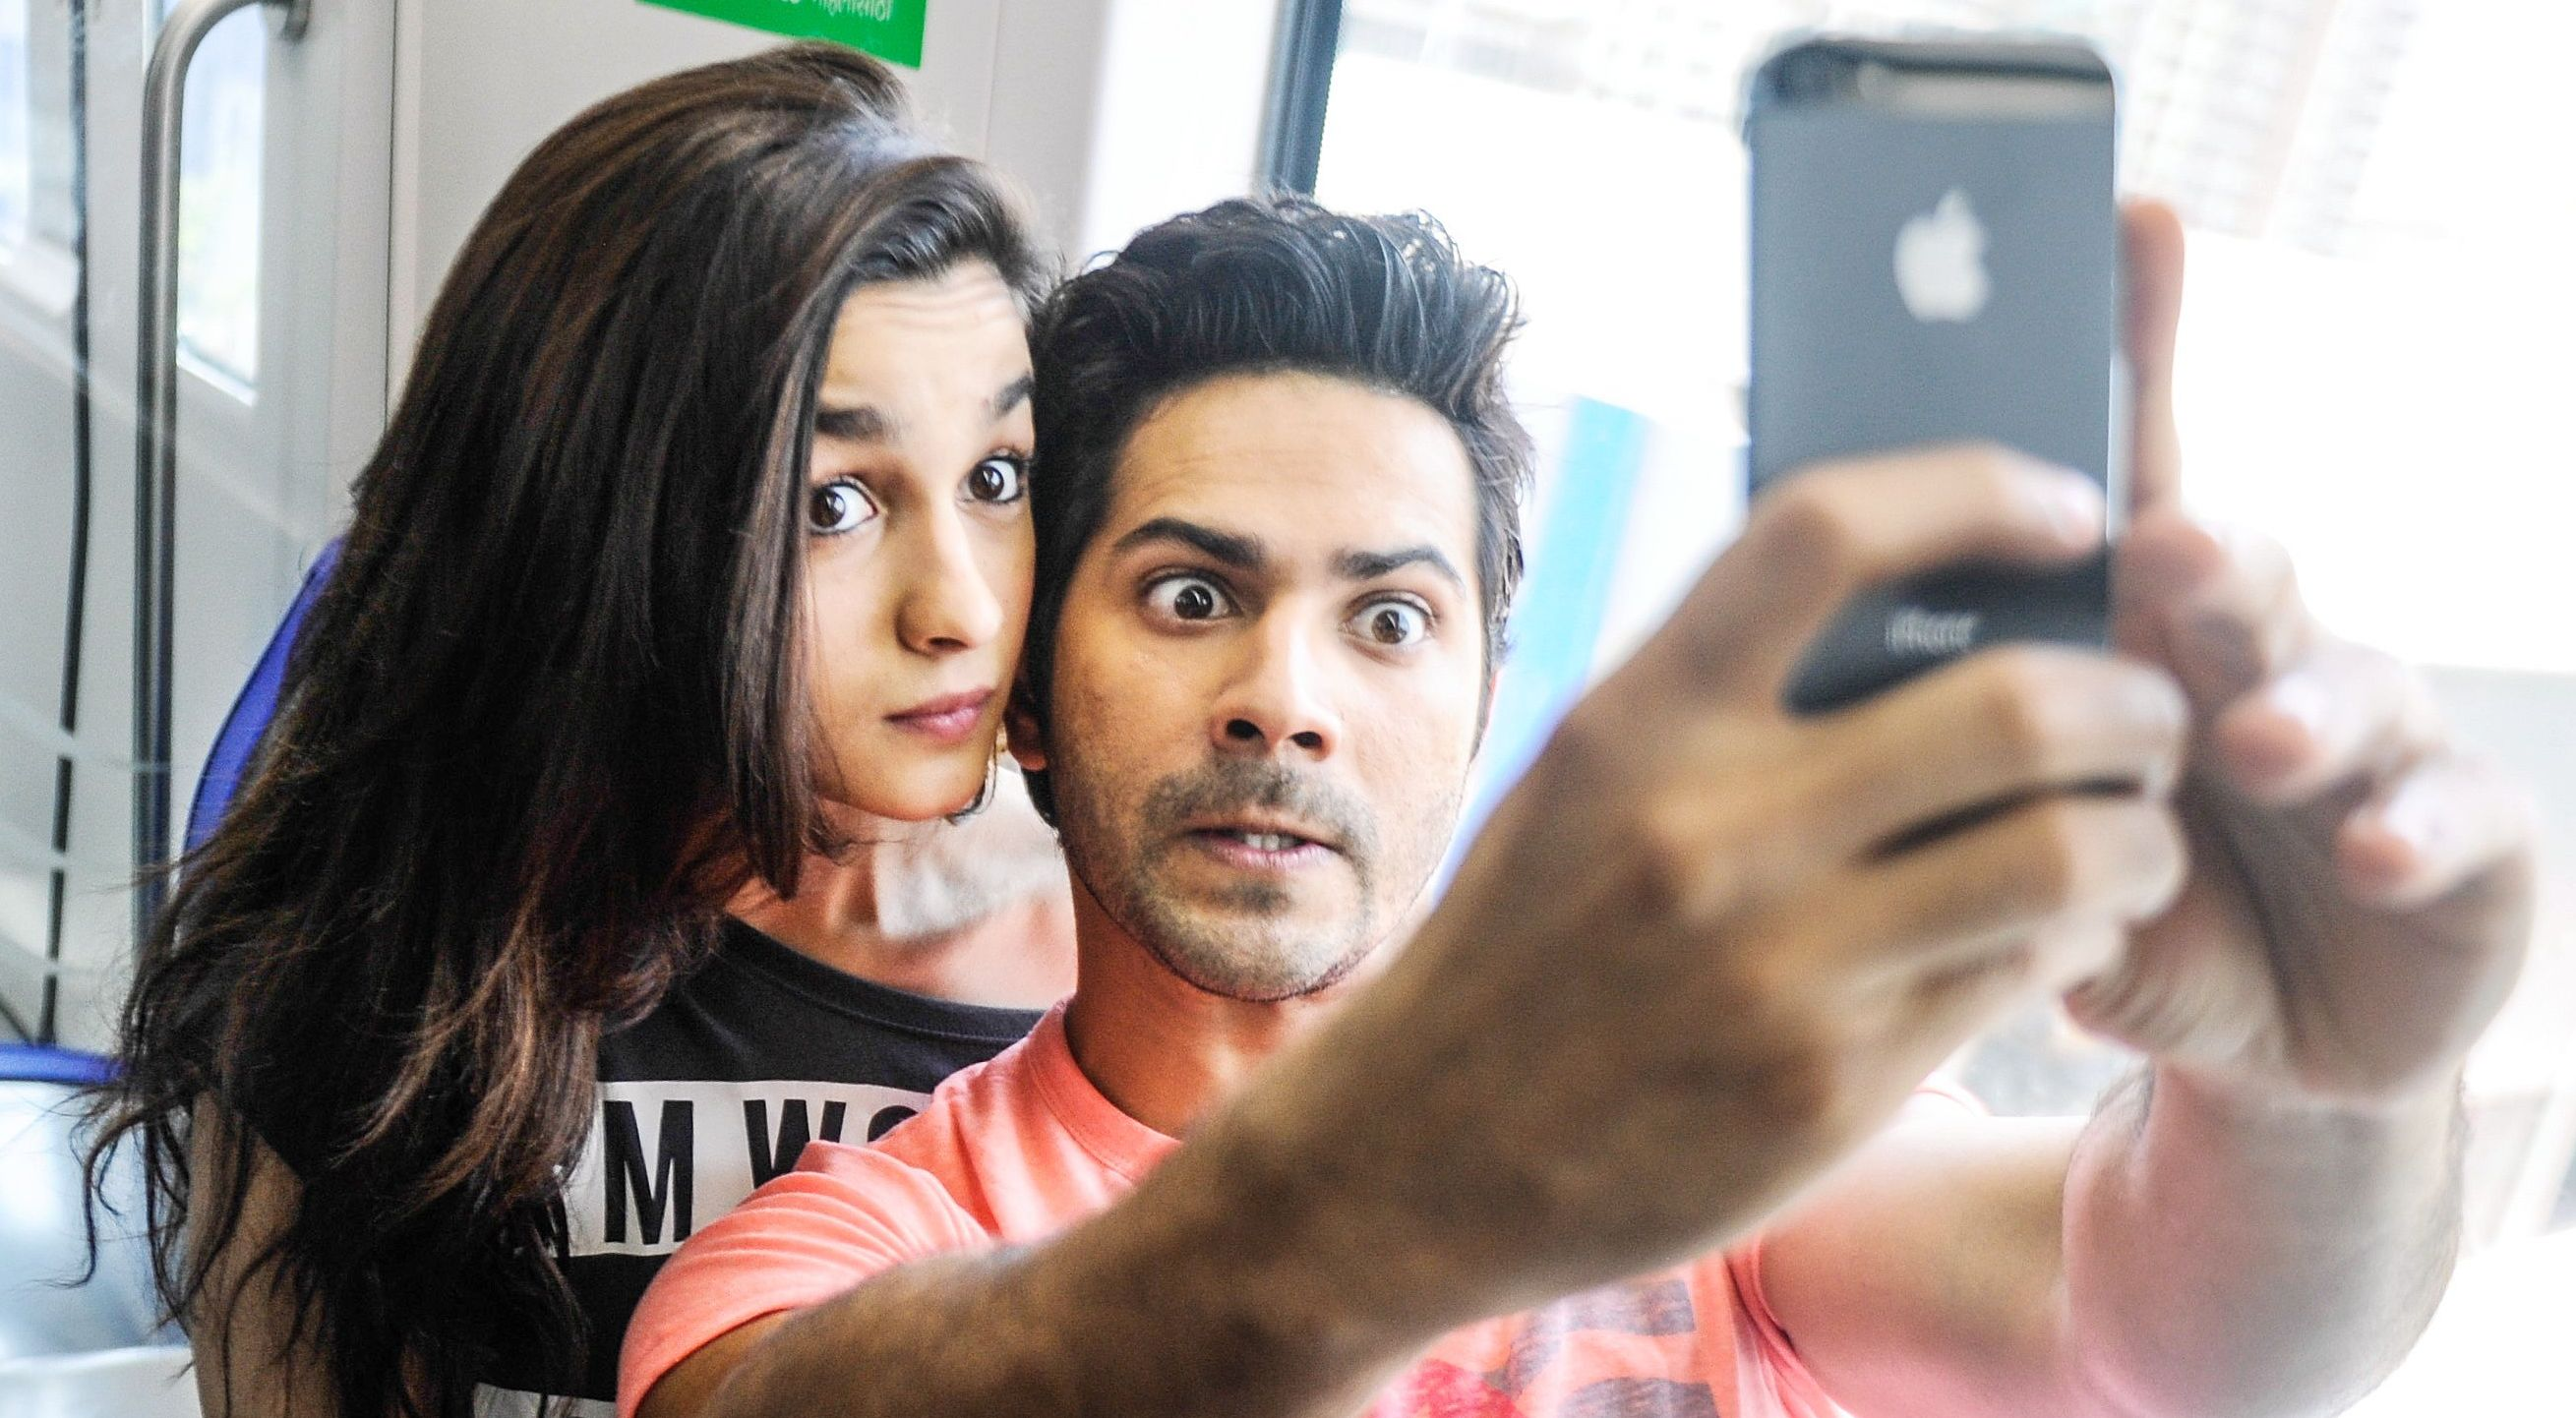 Varun Dhawan and Alia Bhatt in Mumbai Metro on 10.06.14